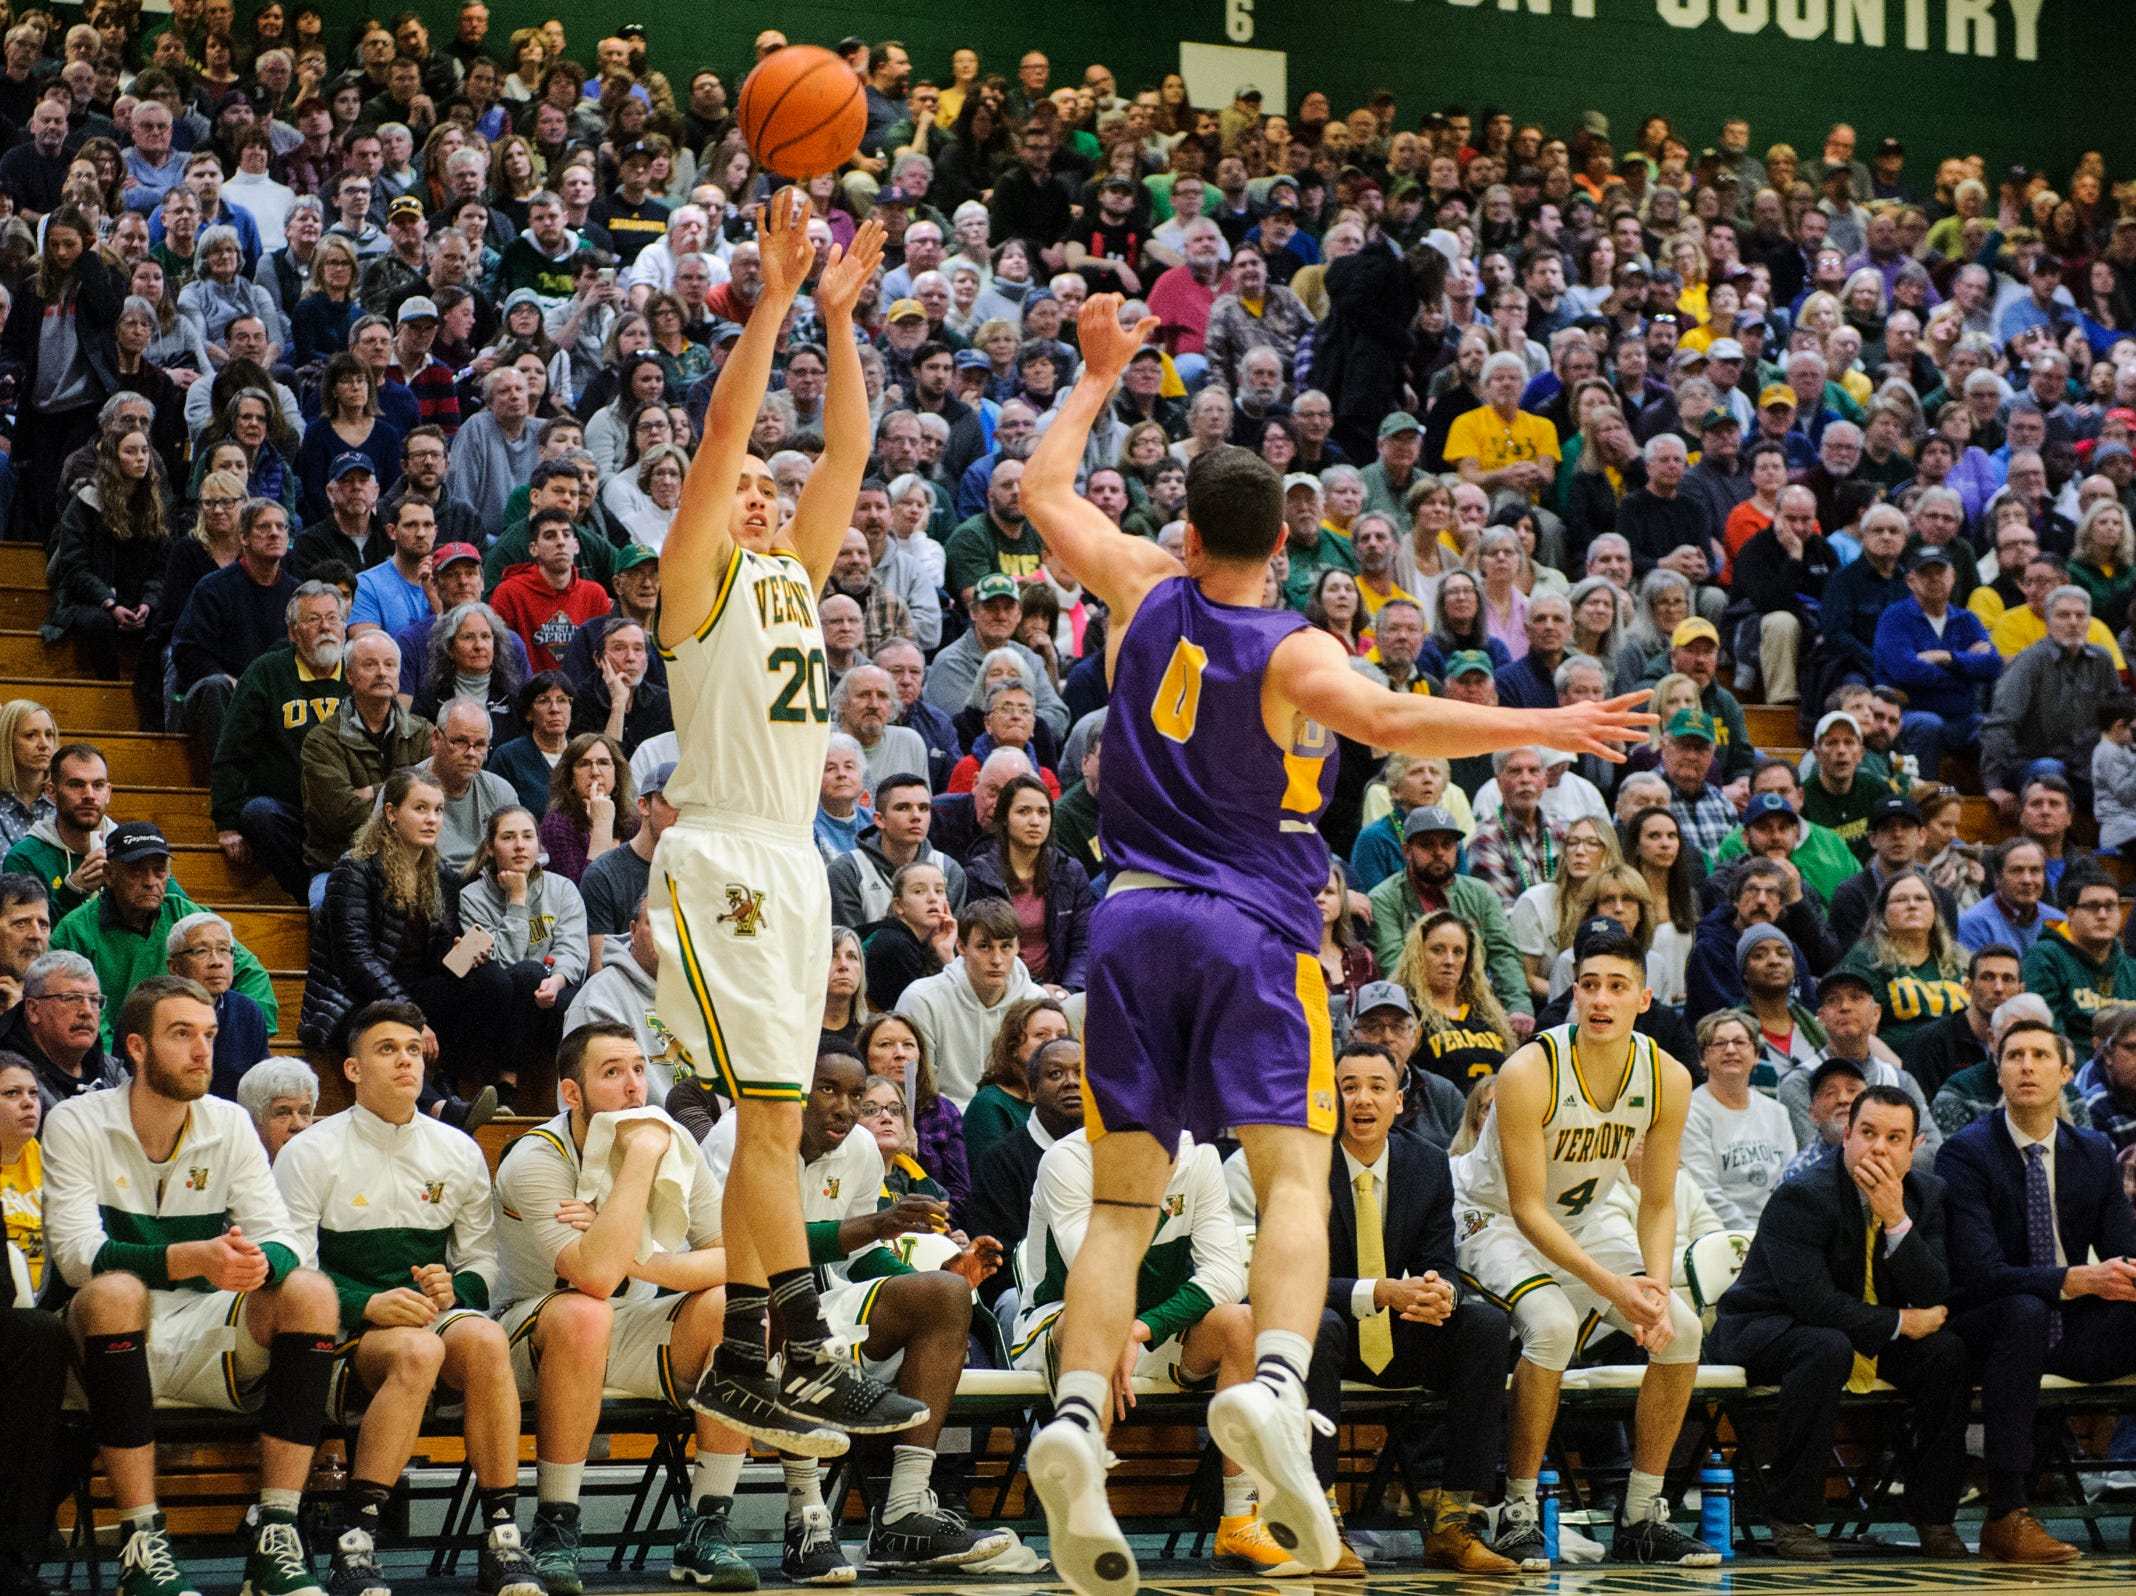 Vermont guard Ernie Duncan (20) shoots a three pointer over Albany's Antonio Rizzuto (0) during the men's basketball game between the Albany Great Danes and the Vermont Catamounts at Patrick Gym on Saturday February 9, 2019 in Burlington, Vermont.